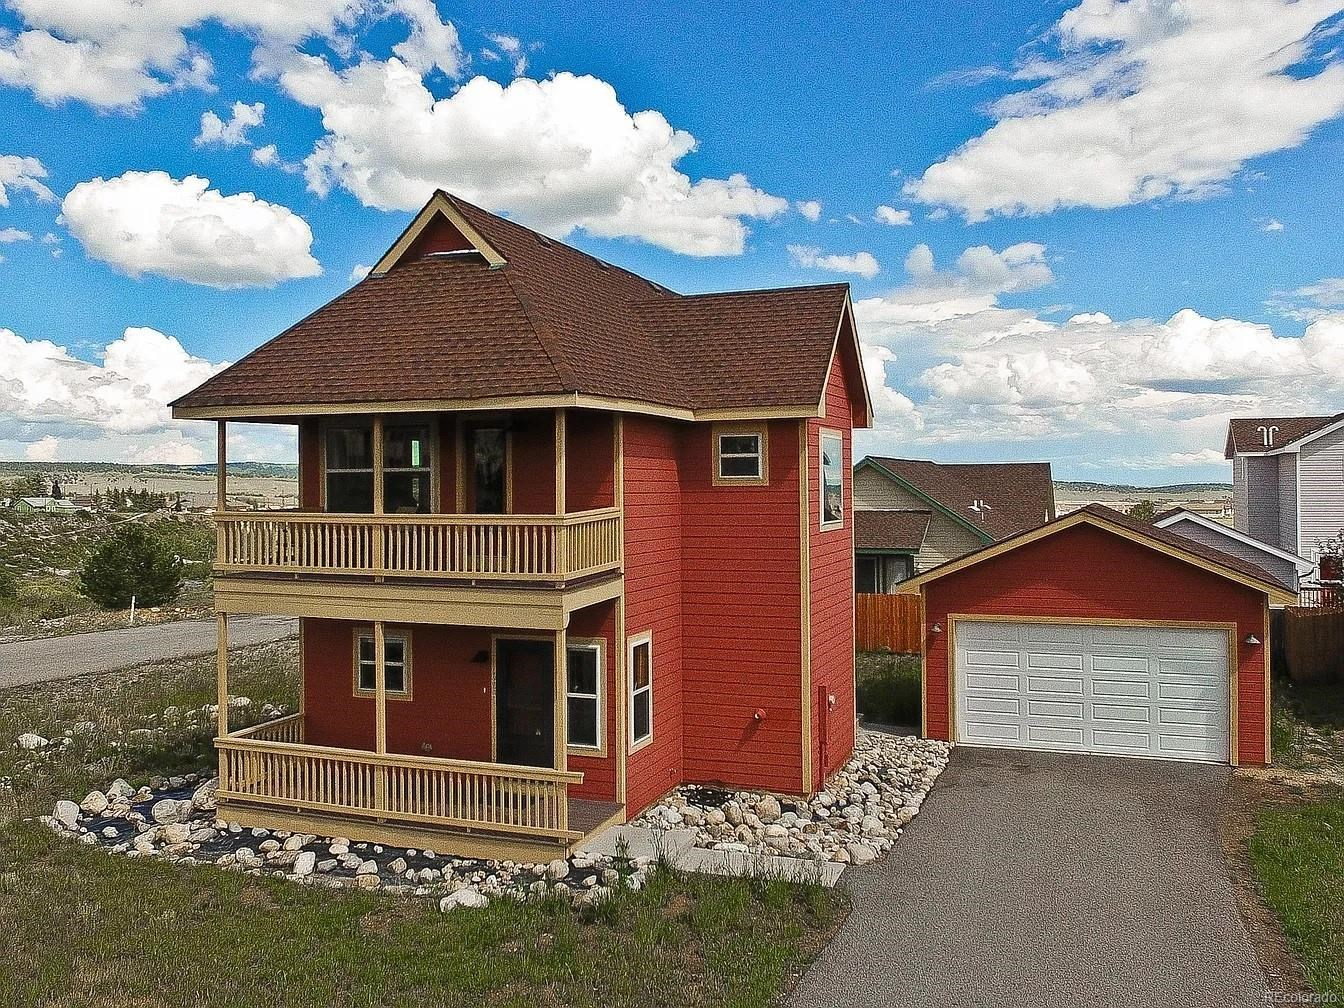 MLS# 6952192 - 1 - 664 Tristan Loop, Fairplay, CO 80440